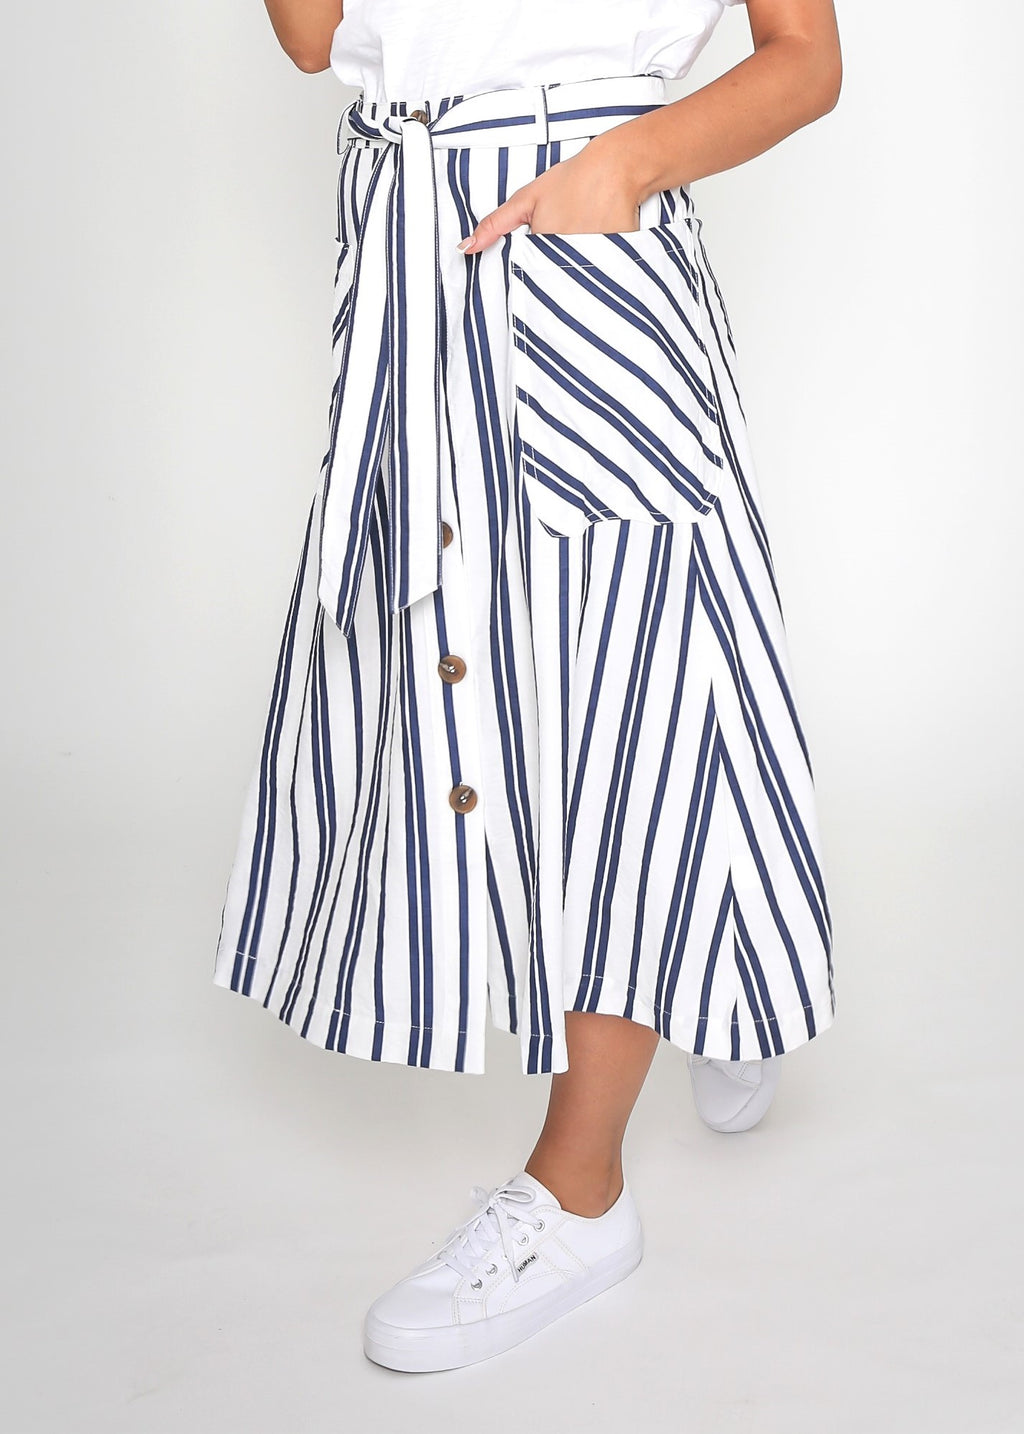 SASHA STRIPED SKIRT - NAVY STRIPE